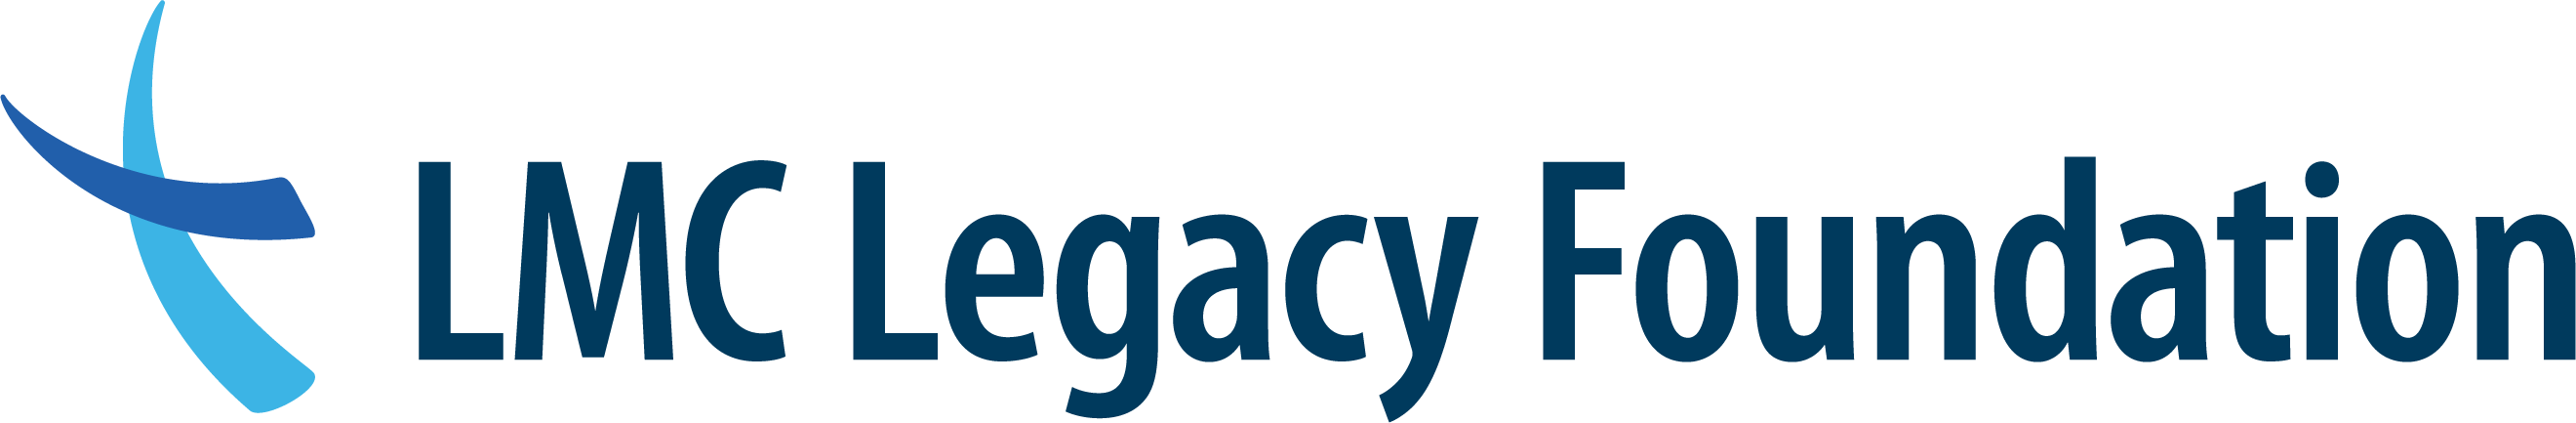 LMC Legacy Foundation